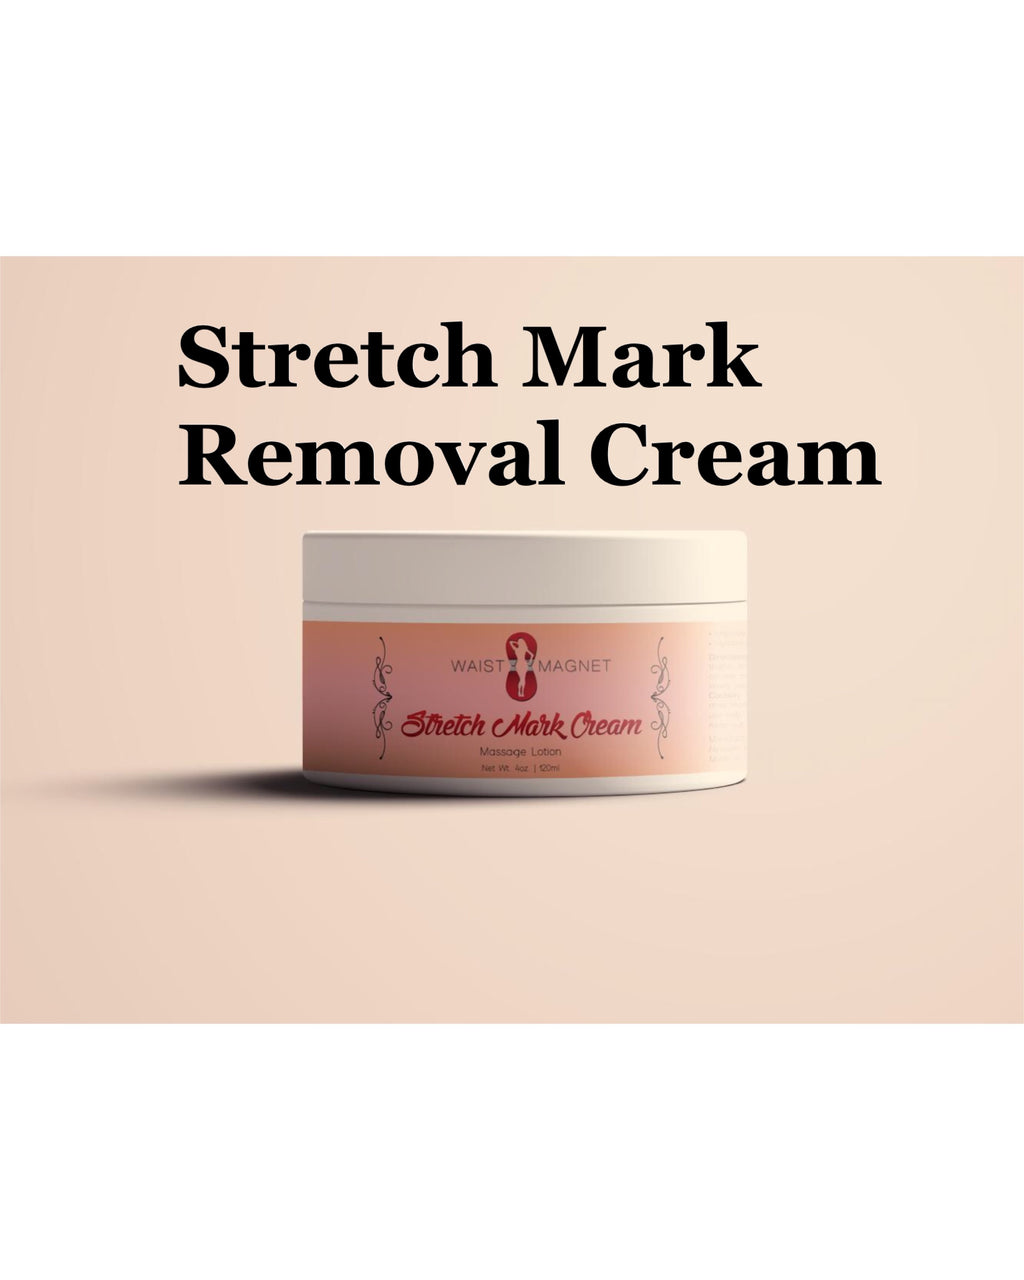 Stretch Mark Removal Cream